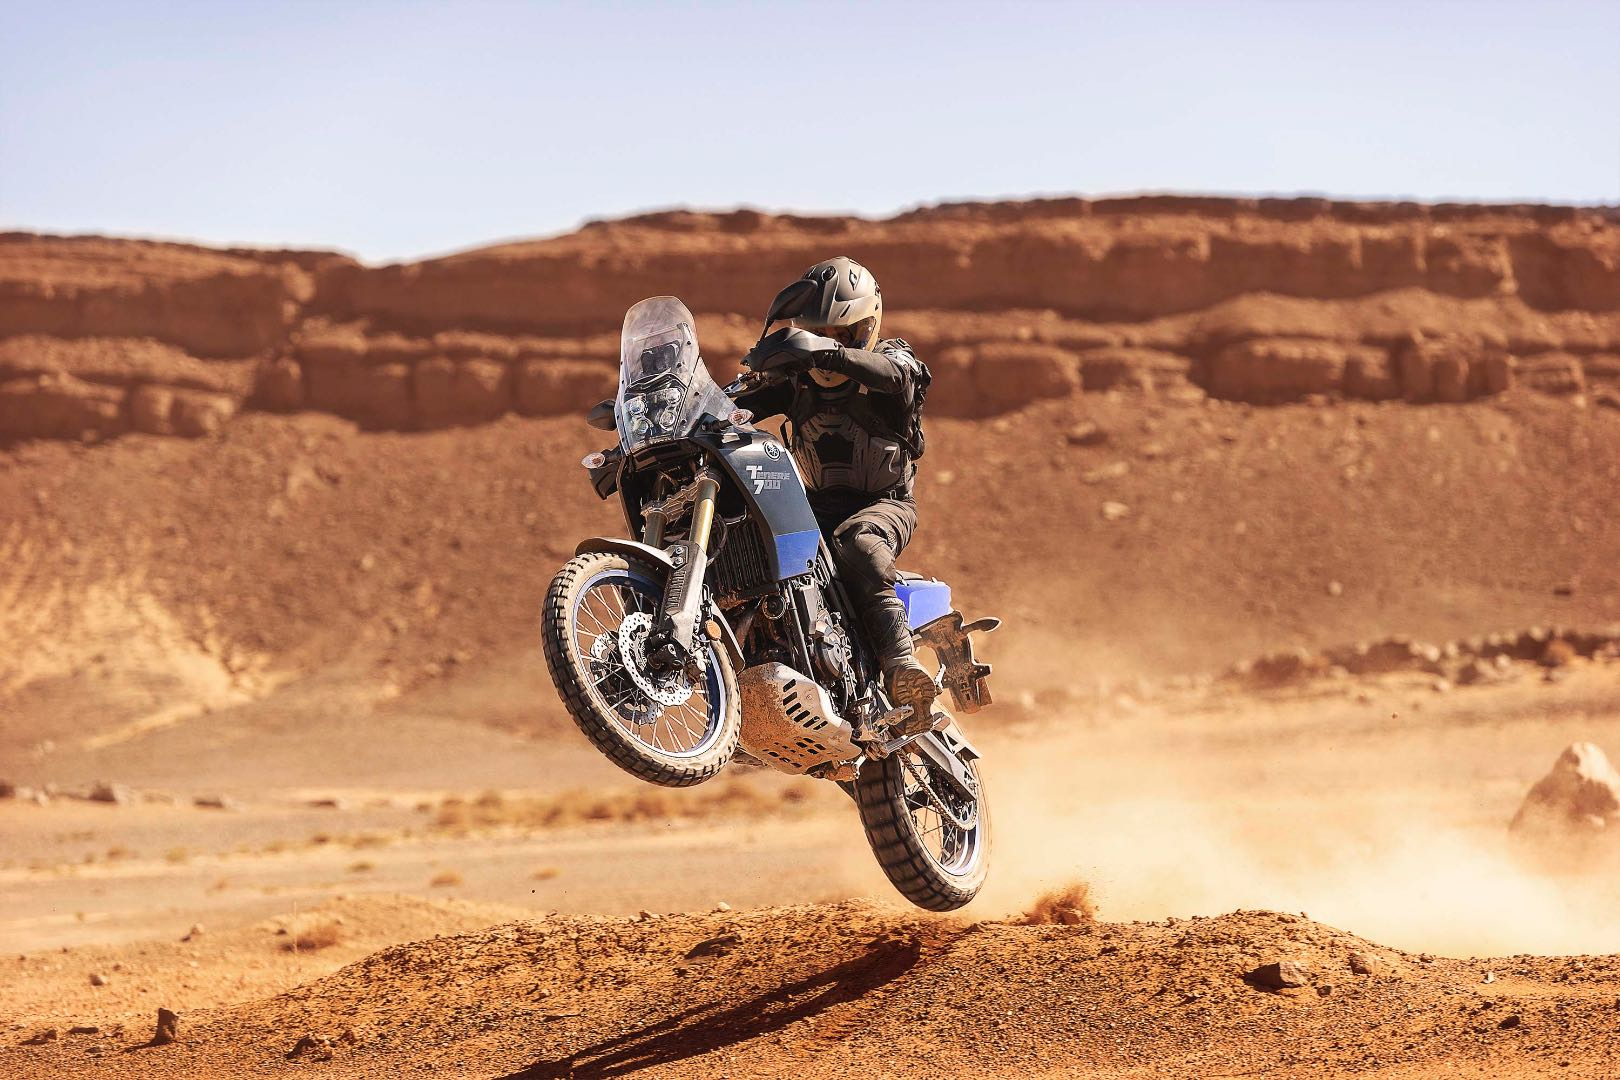 Tenere 700 spearheads Yamaha new models for 2019 at EICMA